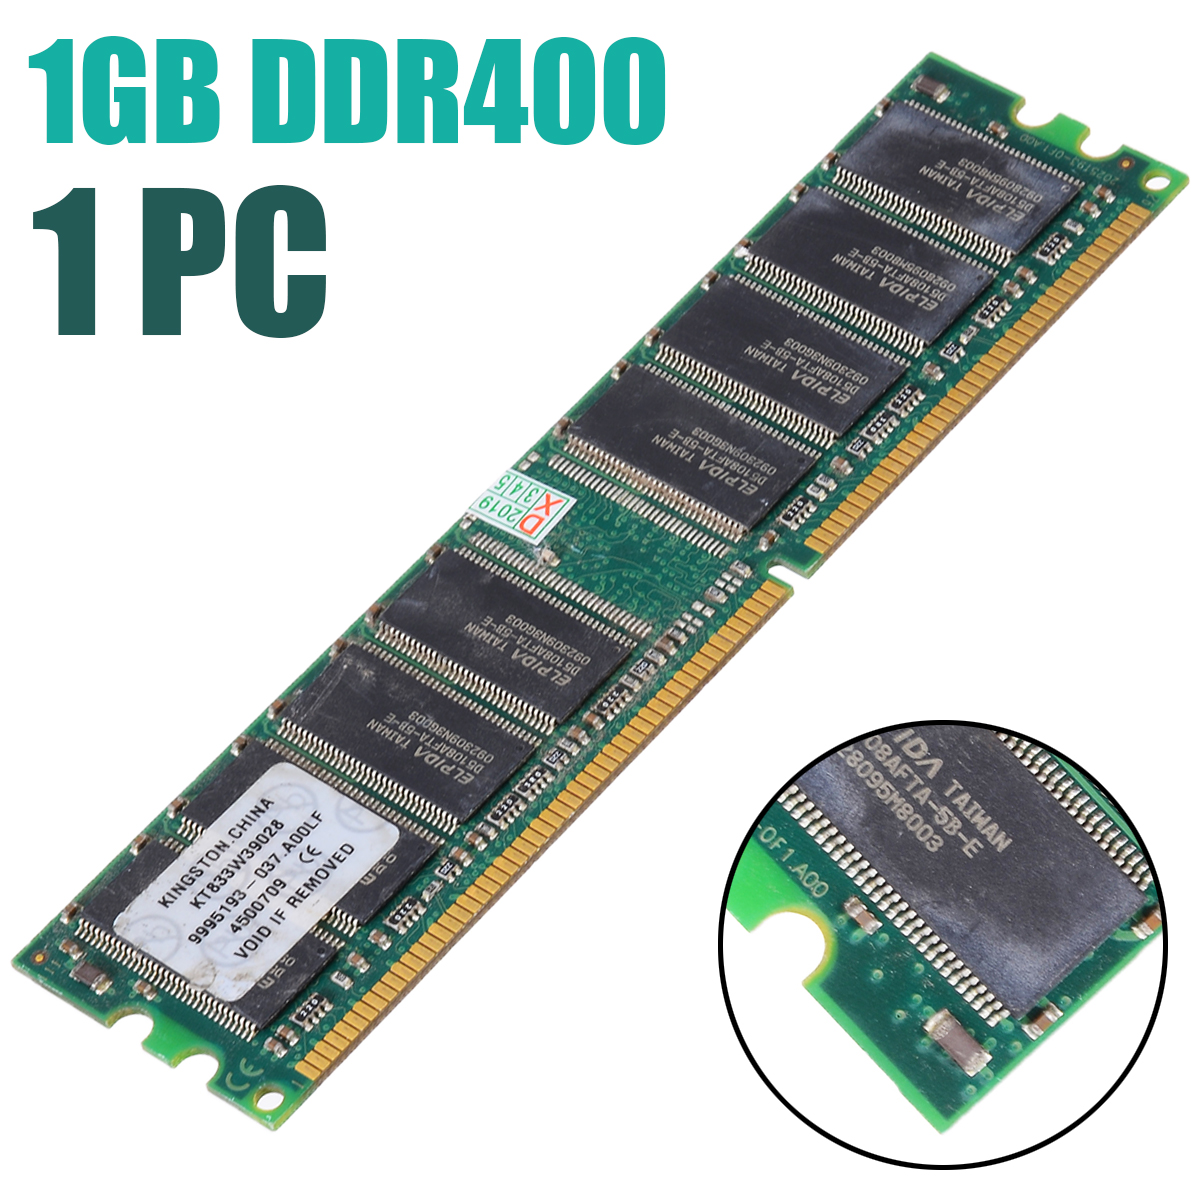 1pc DDR2 1GB DDR400 PC 3200 Memory With Heat Sink 400Mhz 333 266 1.5V Desktop Ram 184-pin FOR Computer Desktop Parts